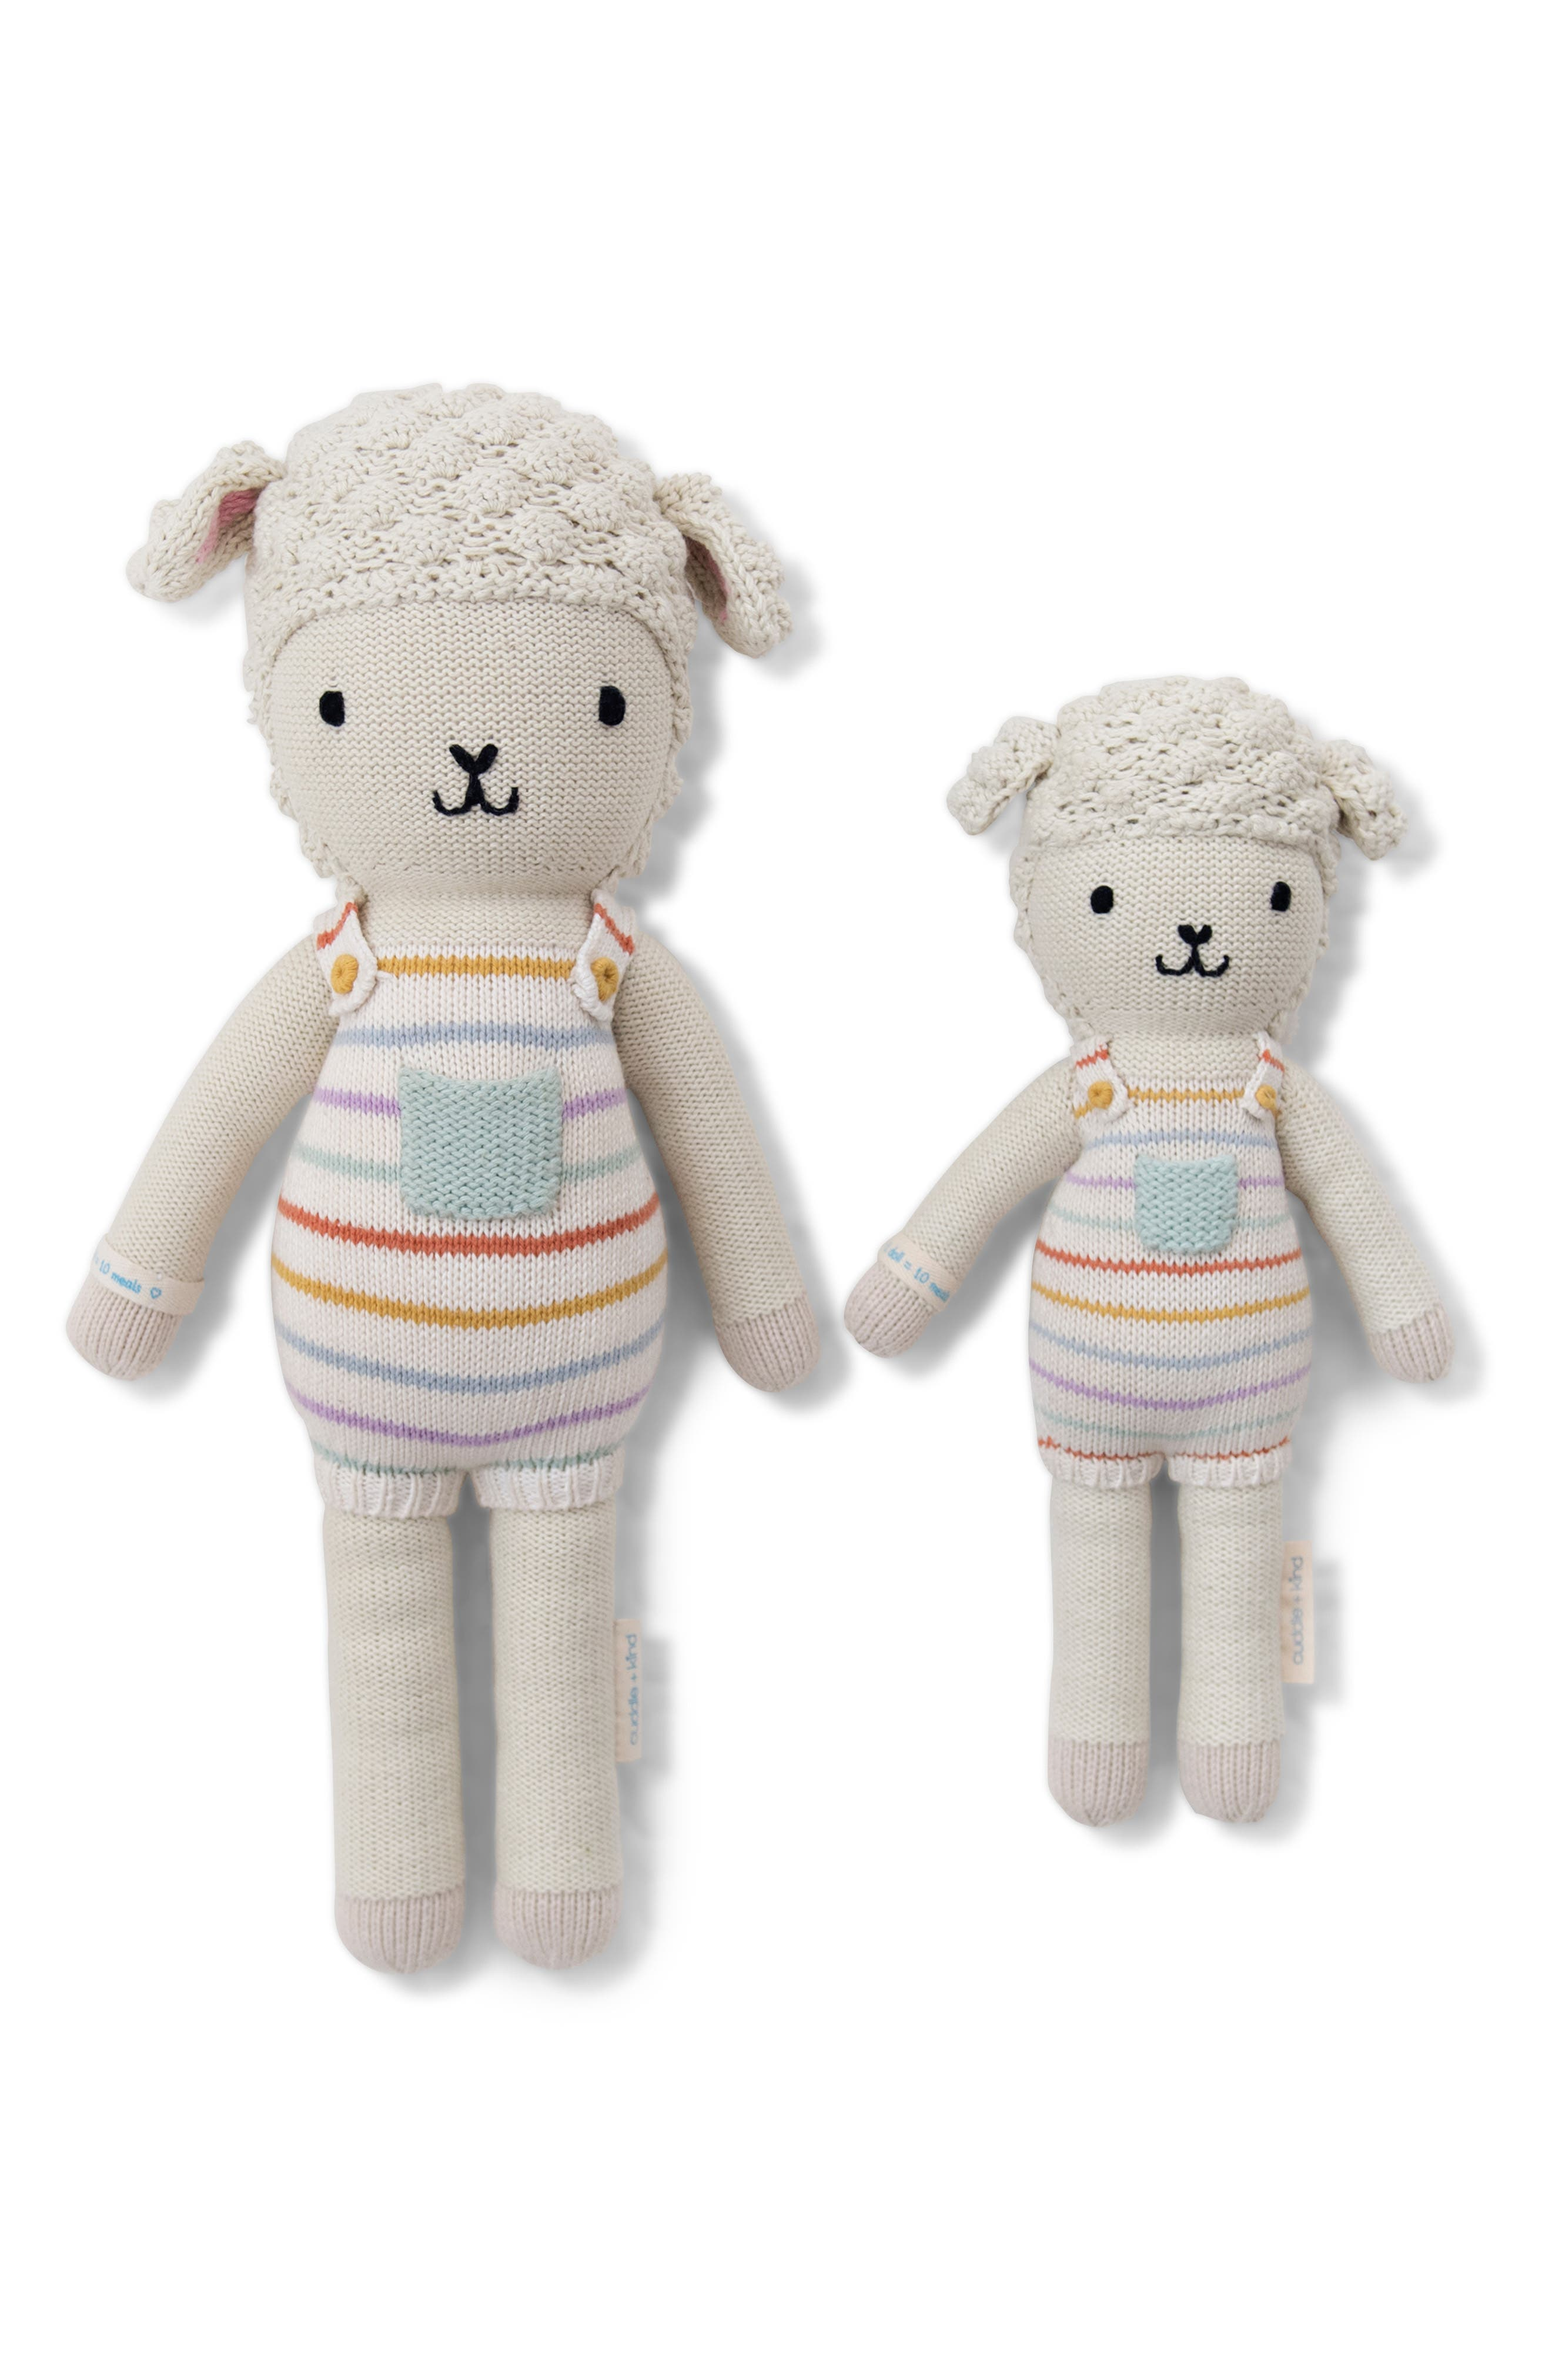 cuddle + kind Avery the Lamb Stuffed Animal,                         Main,                         color, 100